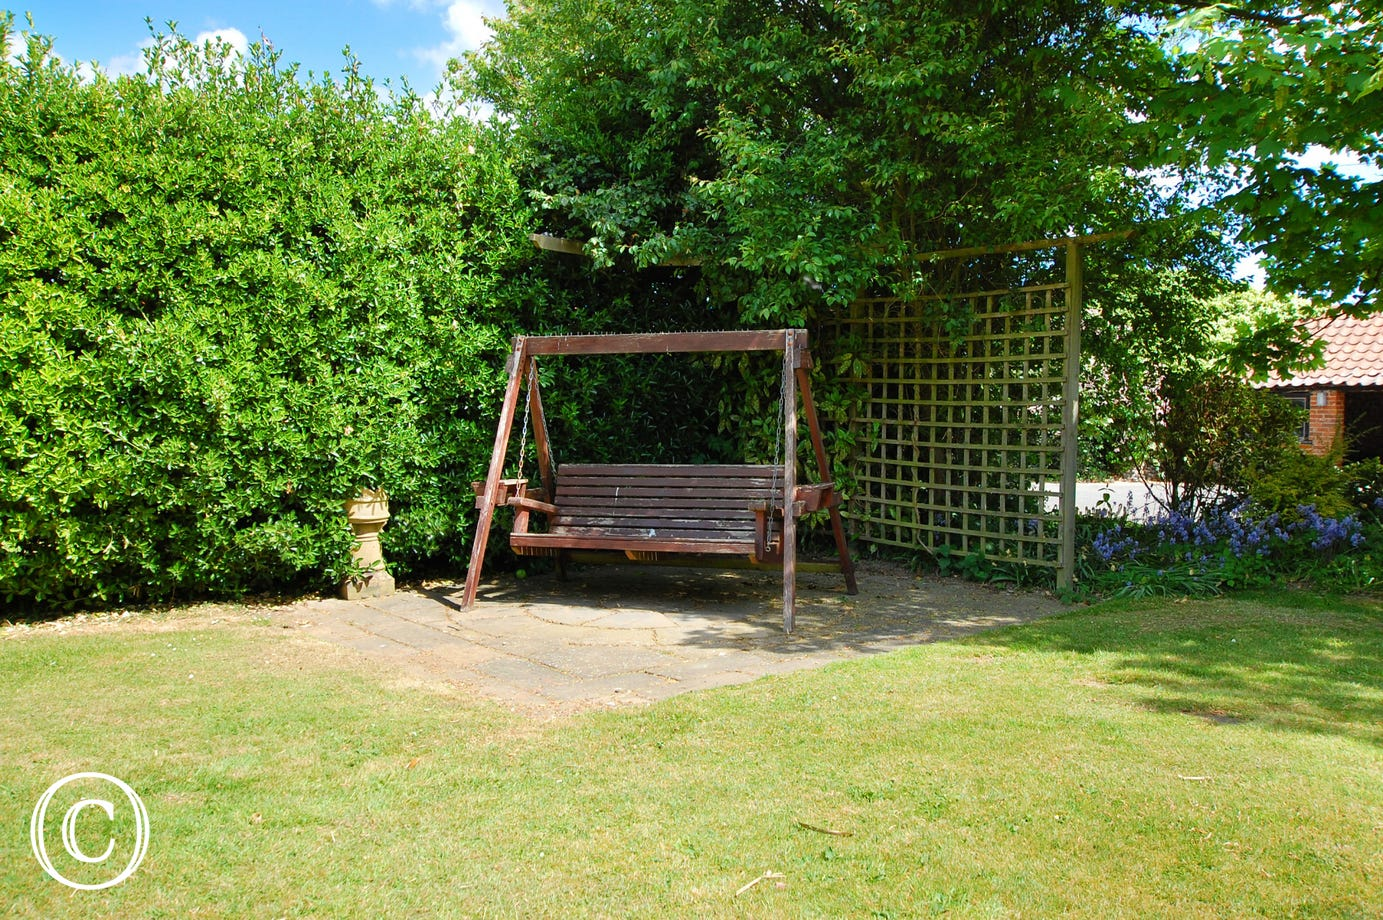 Within the garden there is a delightful swing, a lovely place to relax and enjoy the outdoors